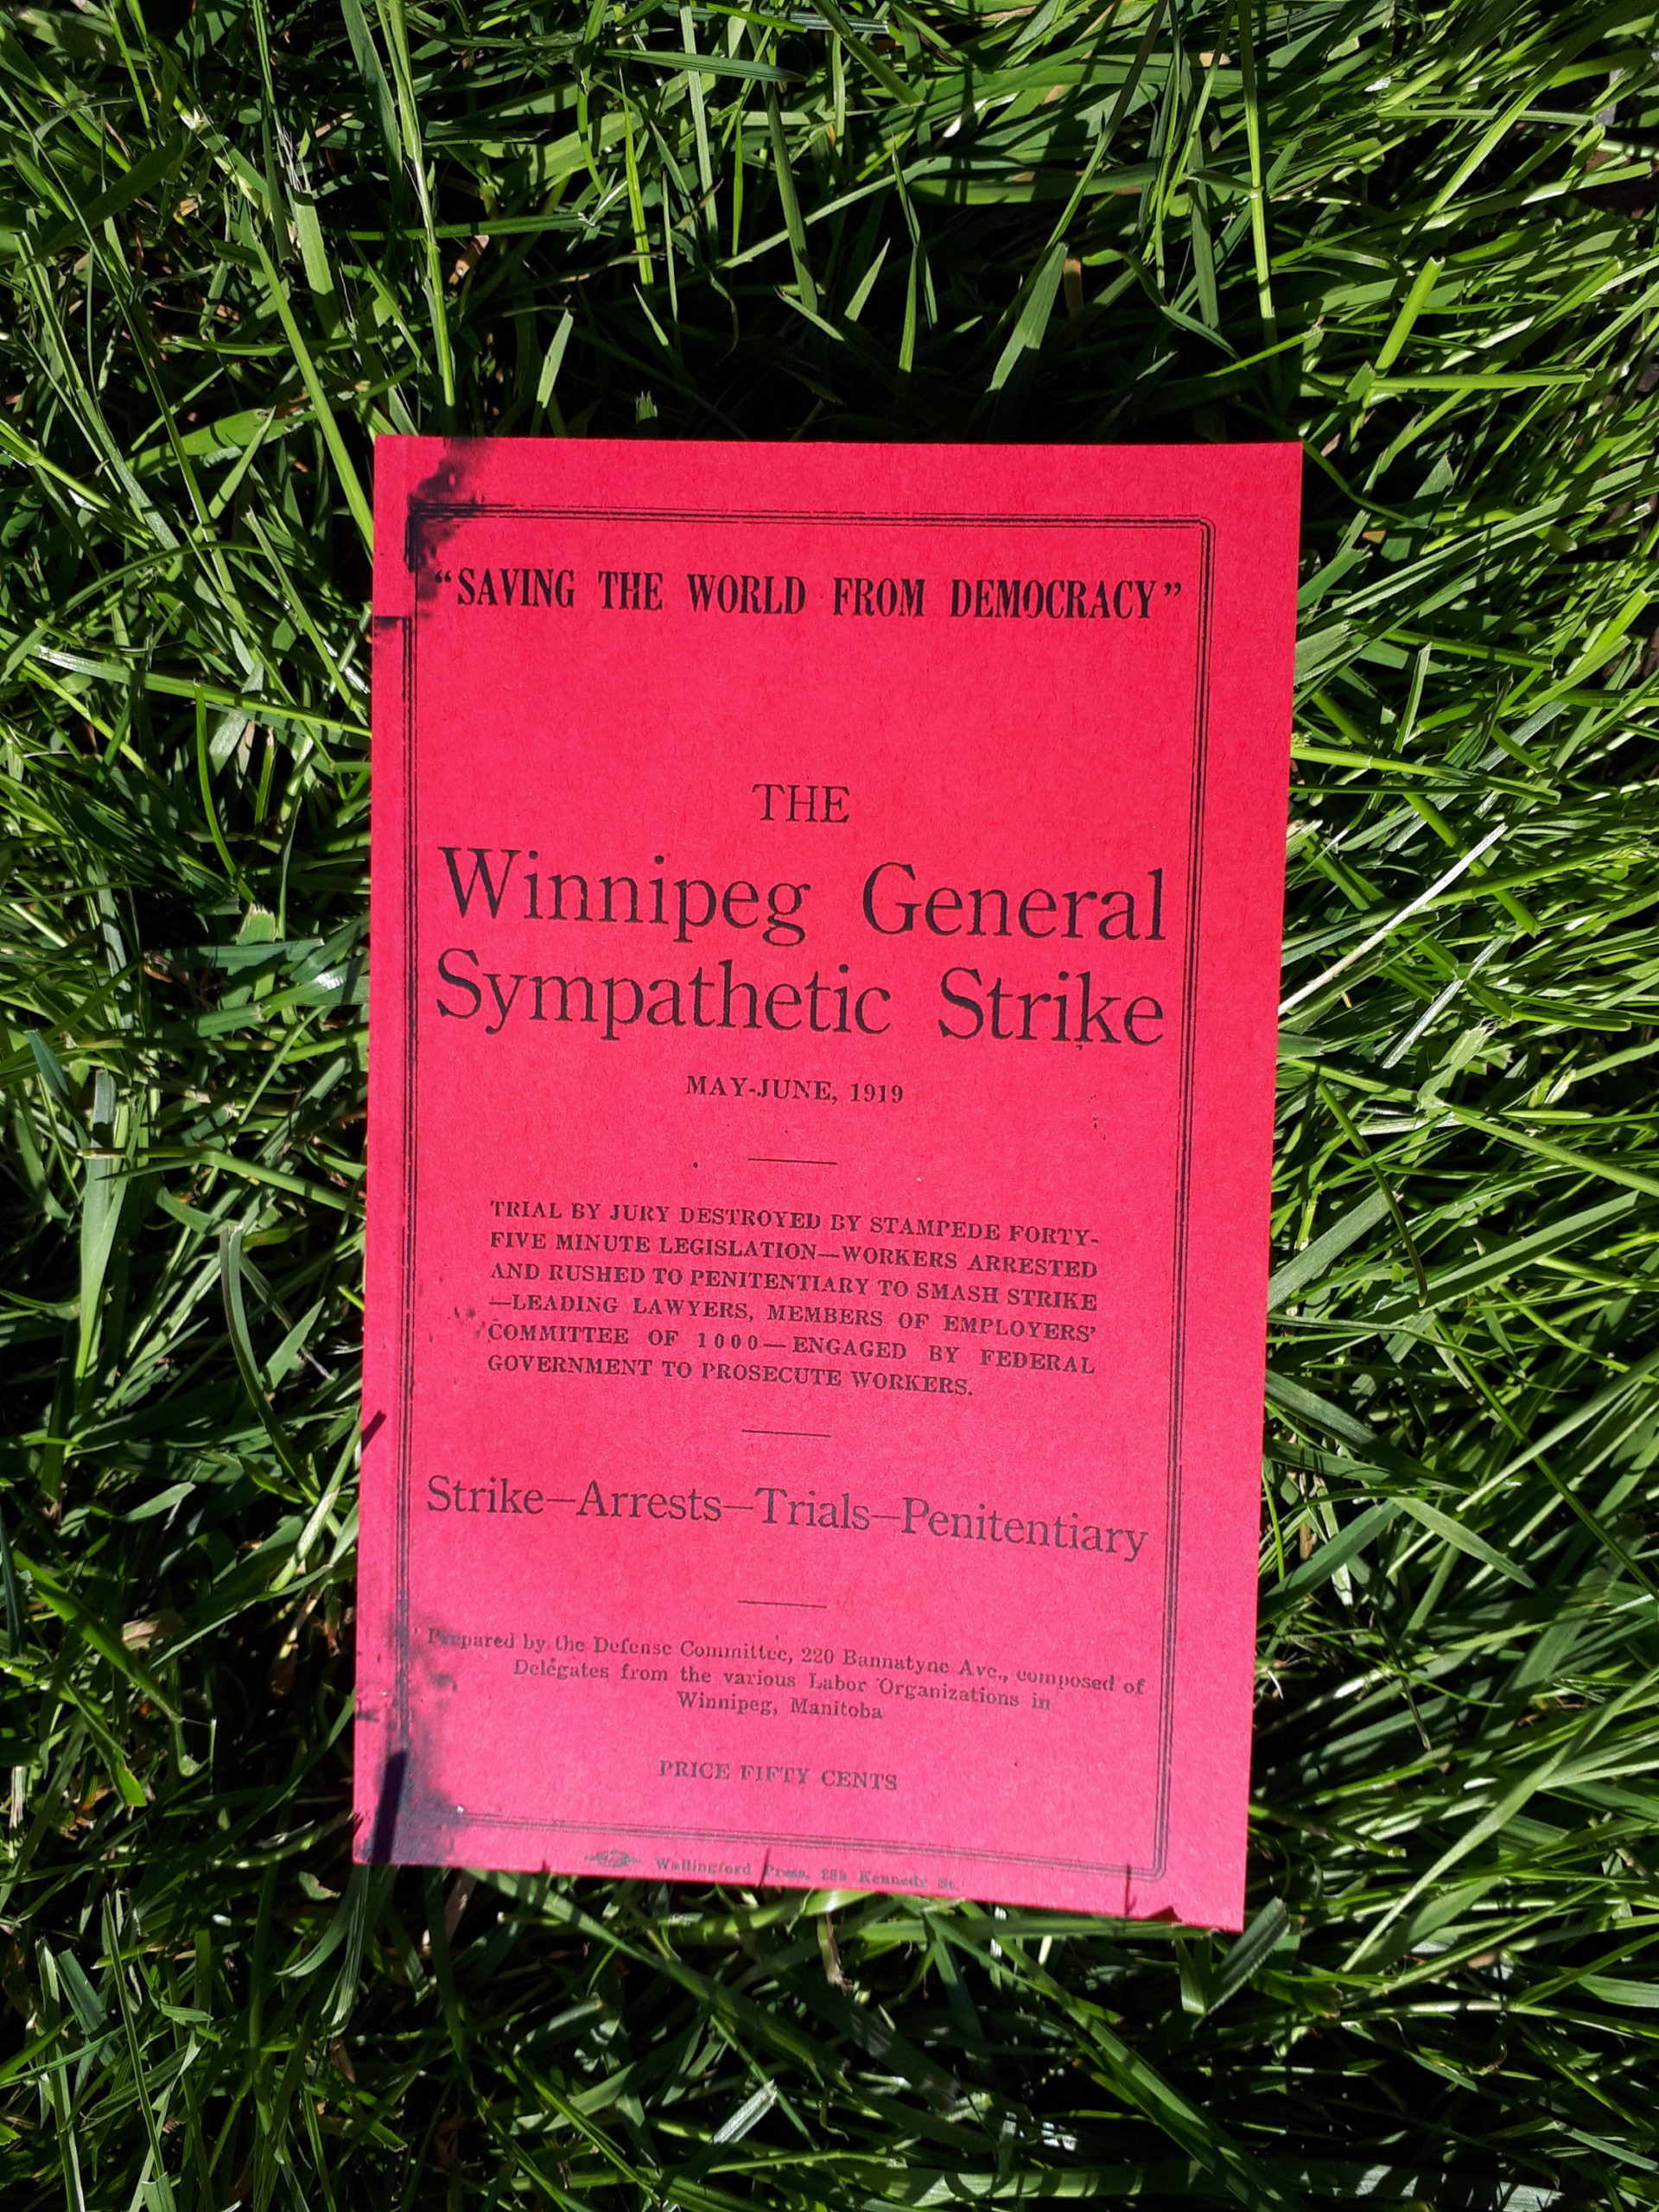 "A book with bright read covers laying on a surface of vibrant green grass. The cover reads in part ""'Saving the World from Democracy', The Winnipeg General Sympathetic Strike"""